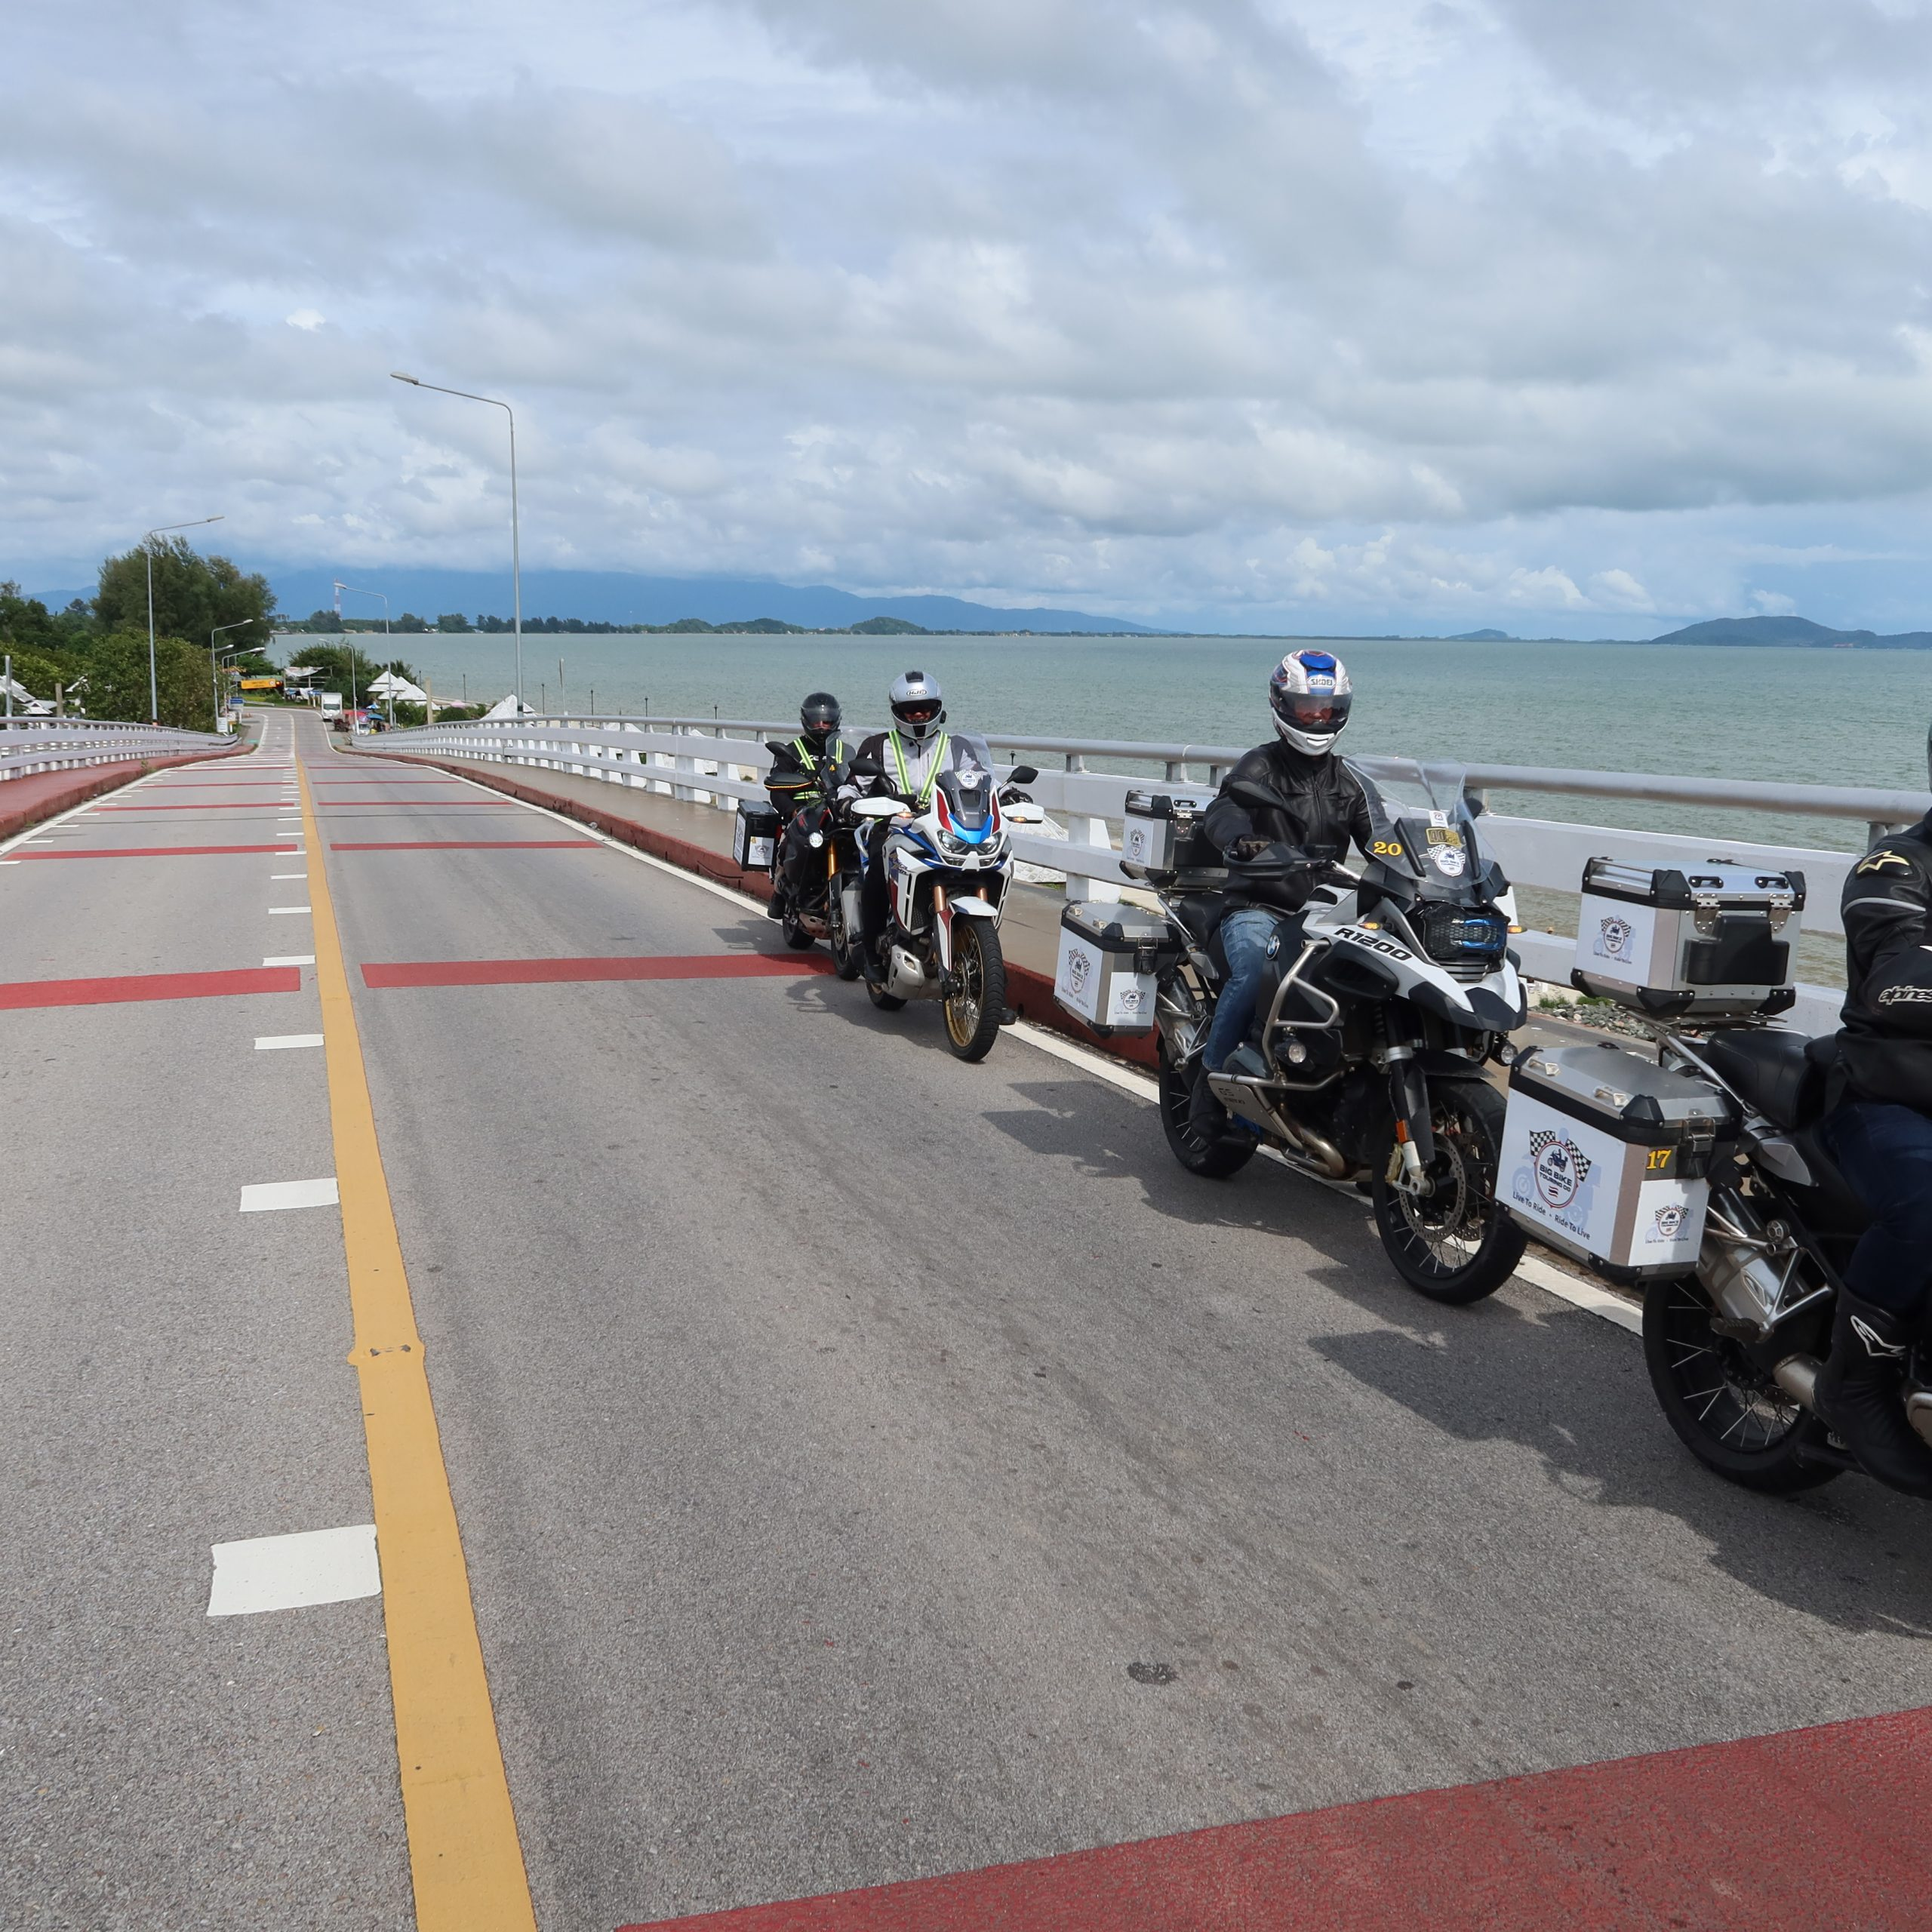 Day 2 - Trat To Koh Chang